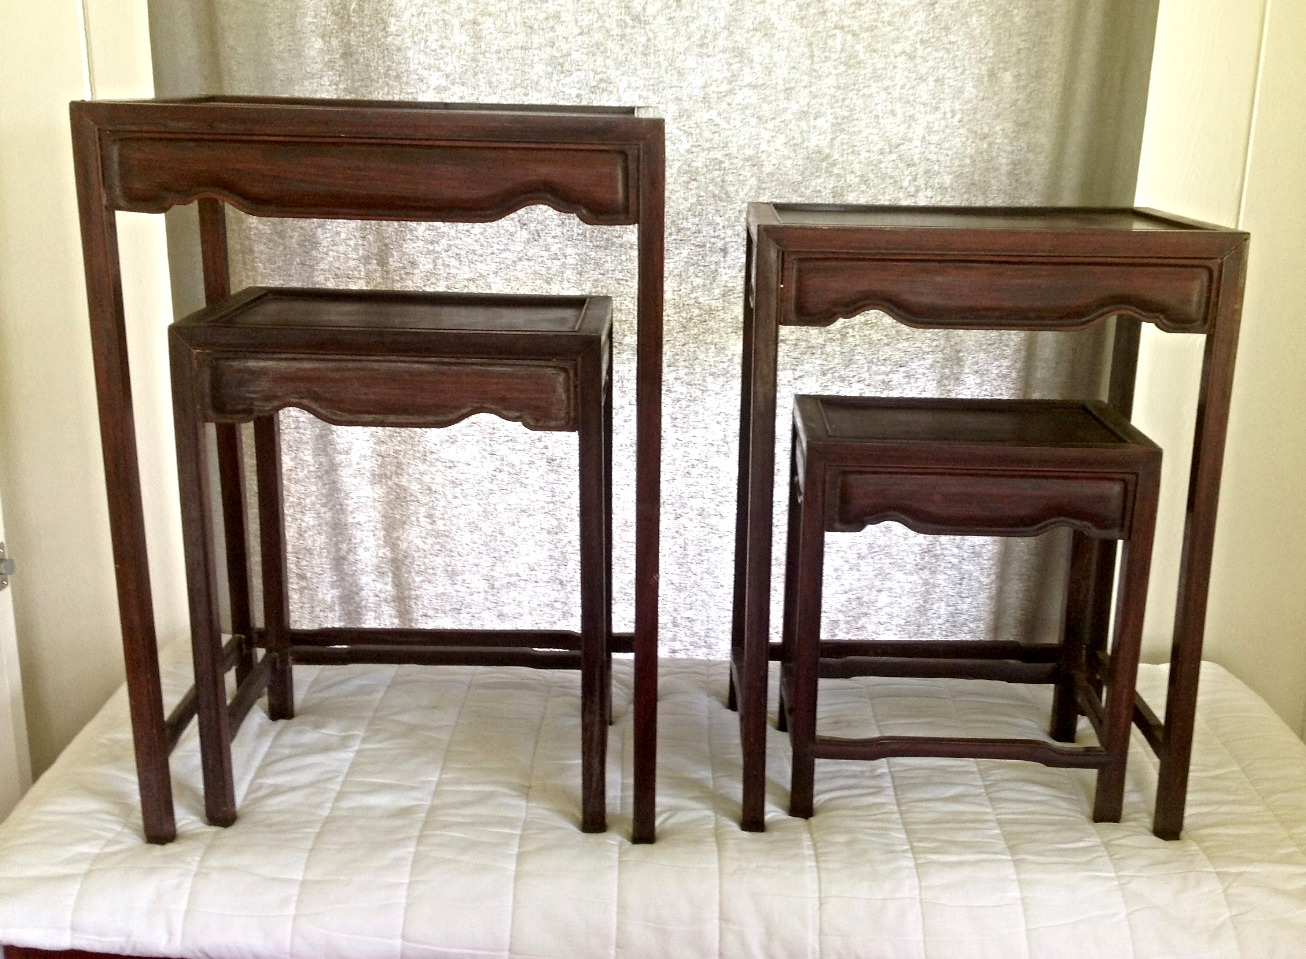 SOLD 1880's Rosewood Nesting Tables